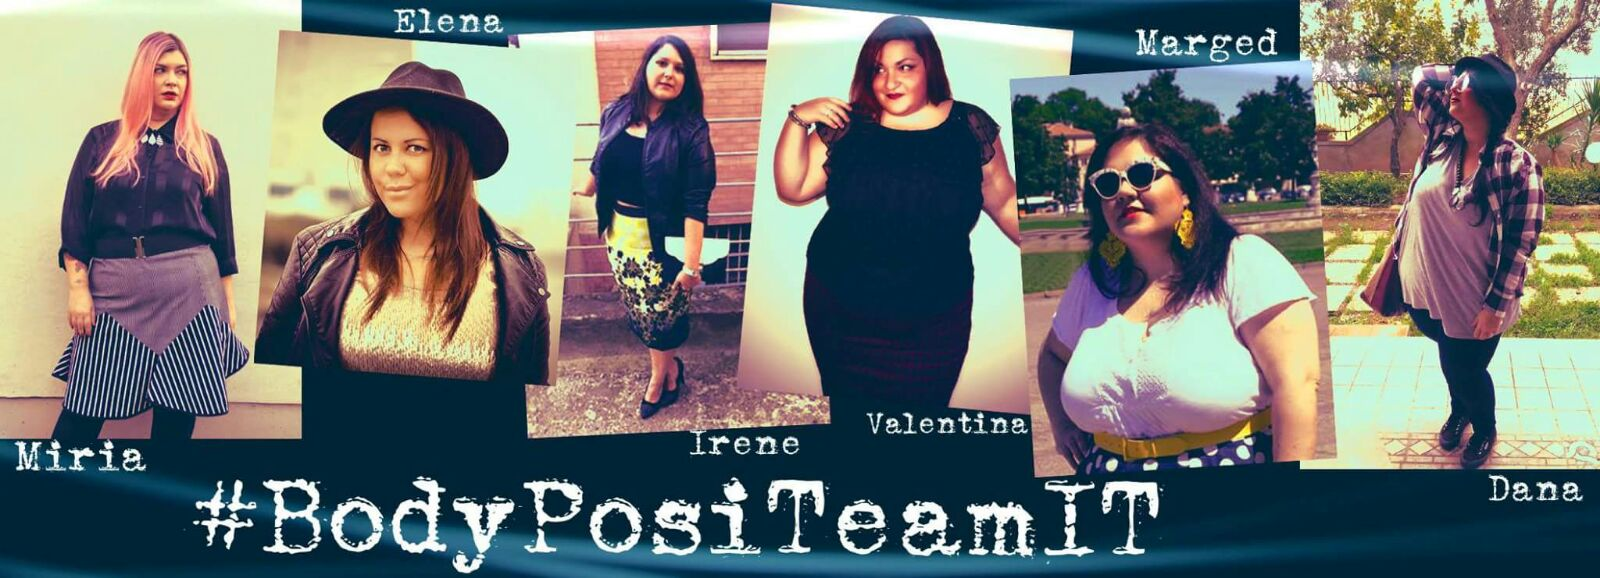 Bodypositeamit parliamo di body positivity plus kawaii plus size fashion blog - La diva delle curve ...